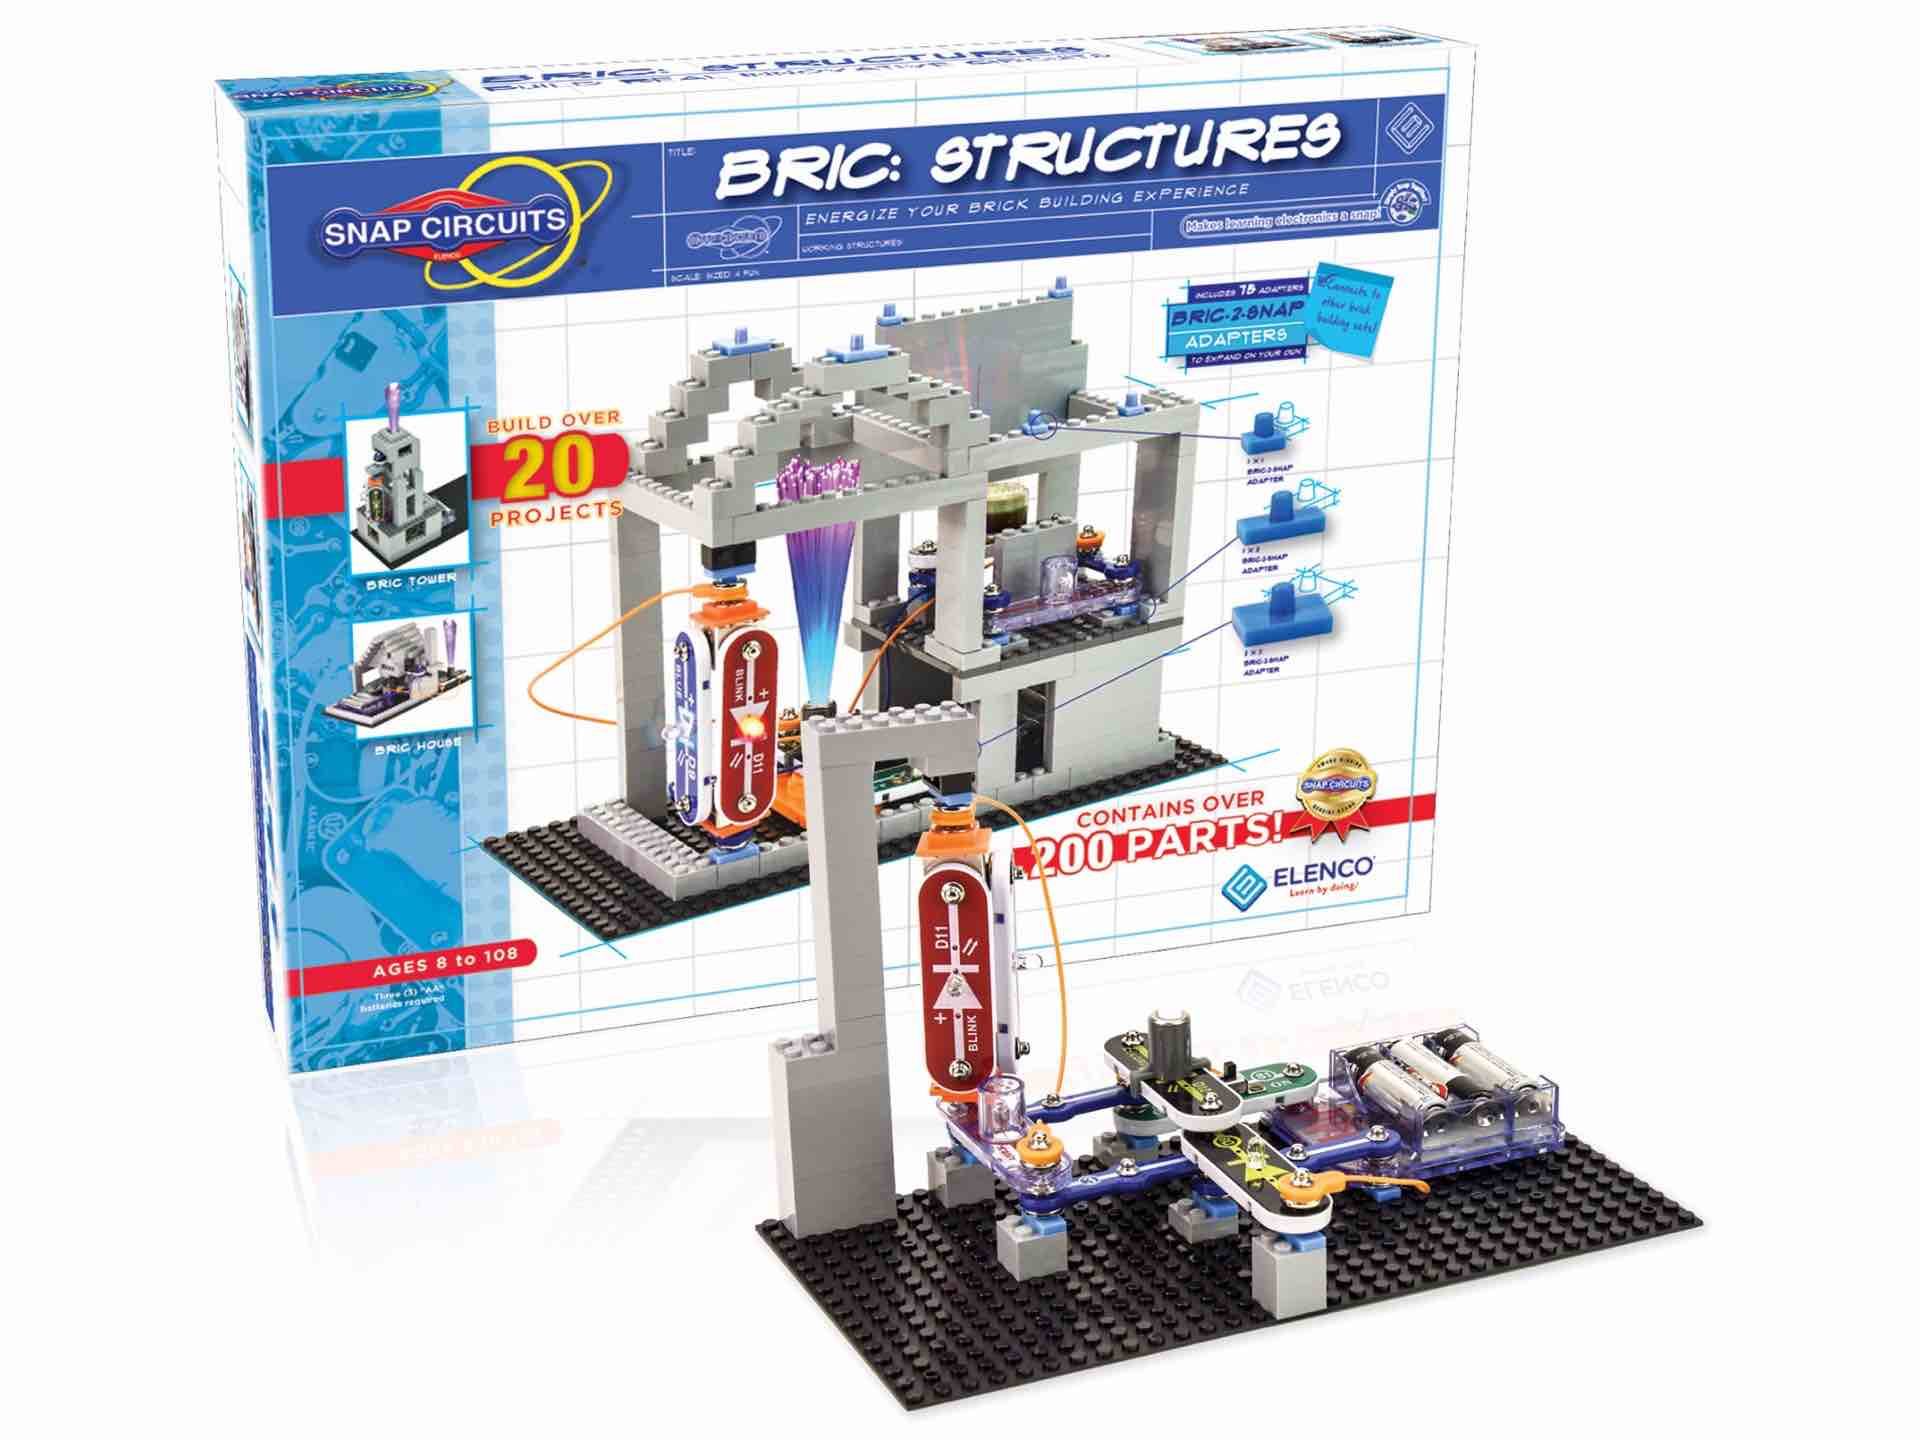 snap-circuits-bric-structures-kit